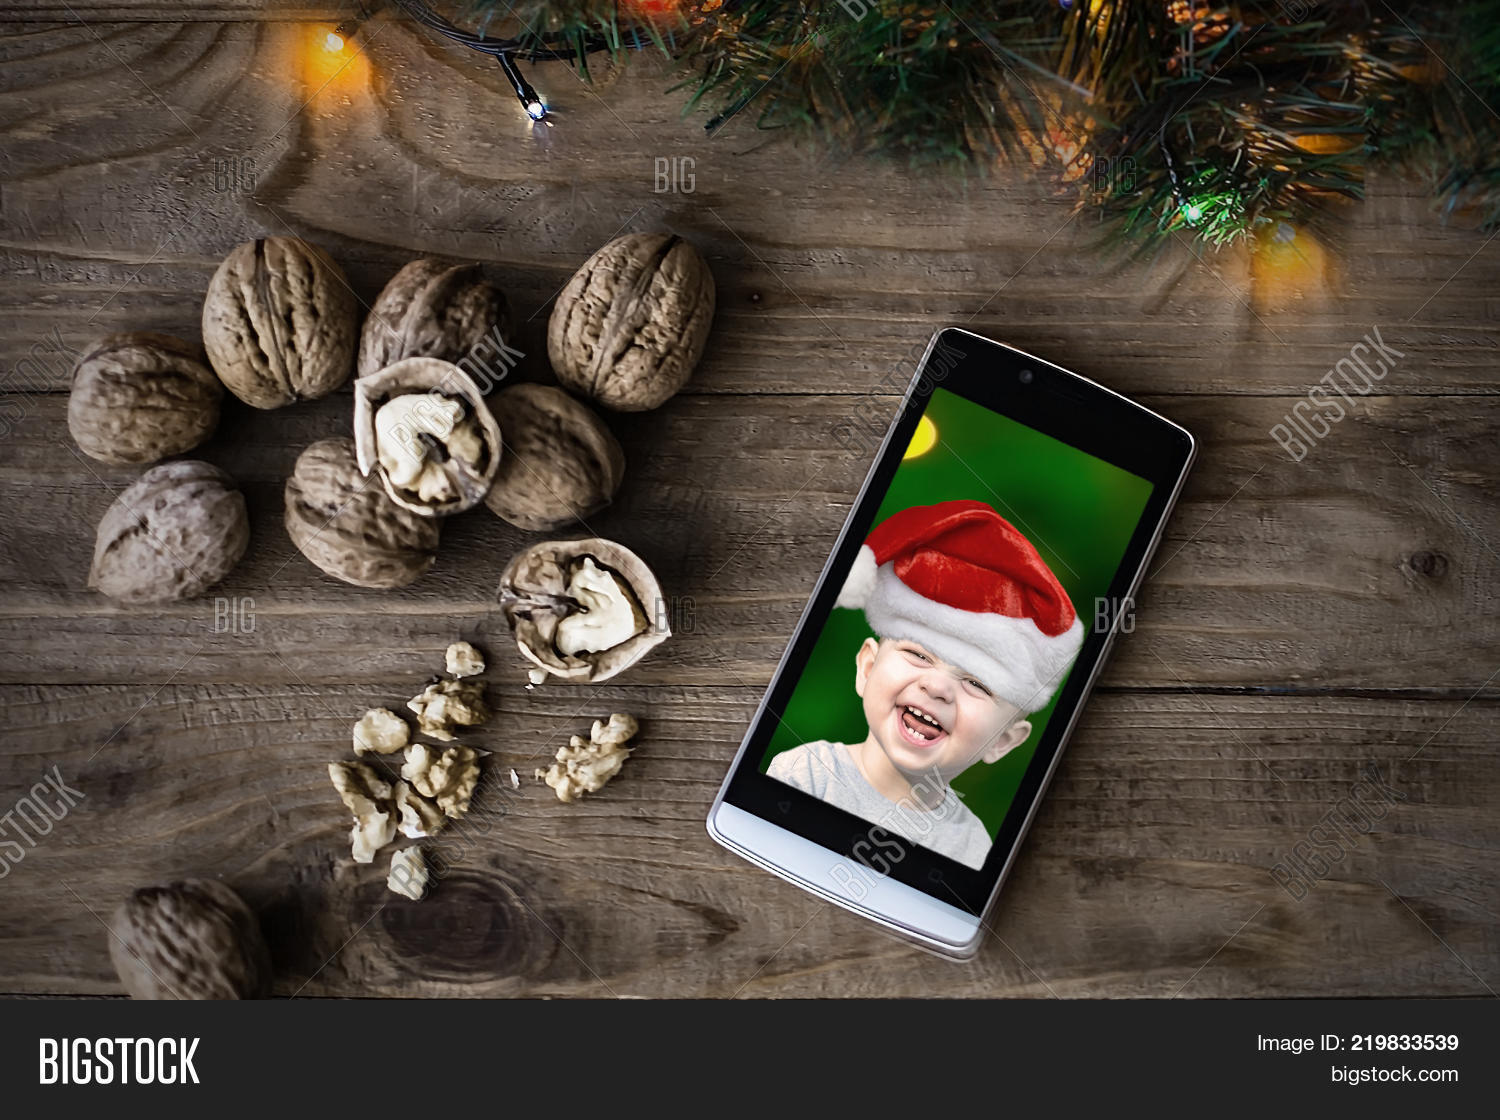 391ef0136e2e7 Mobil phone with a portrait of cute laughing baby in a red Santa Claus hat